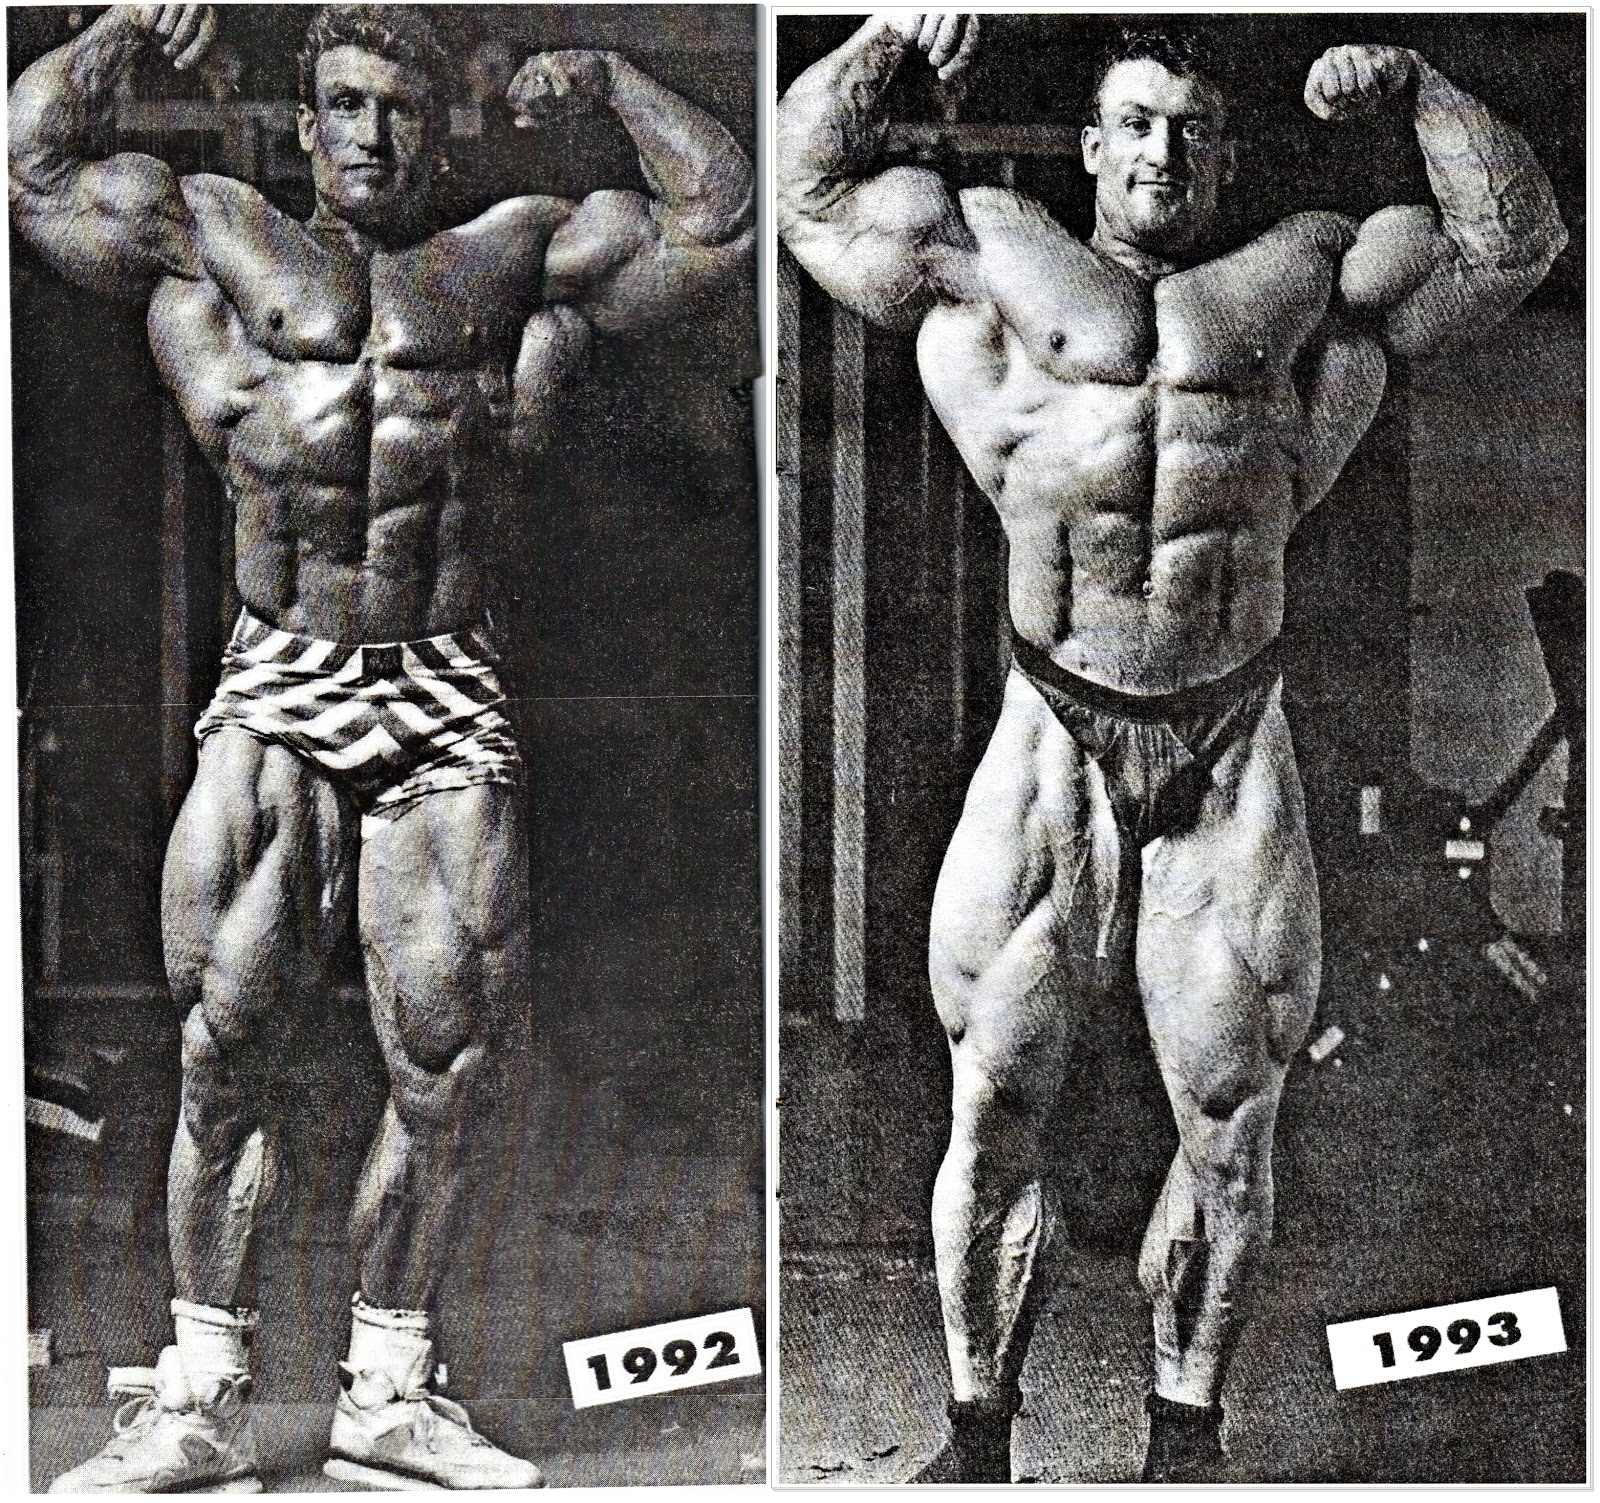 Dorian Yates Images - Add Your Images Here